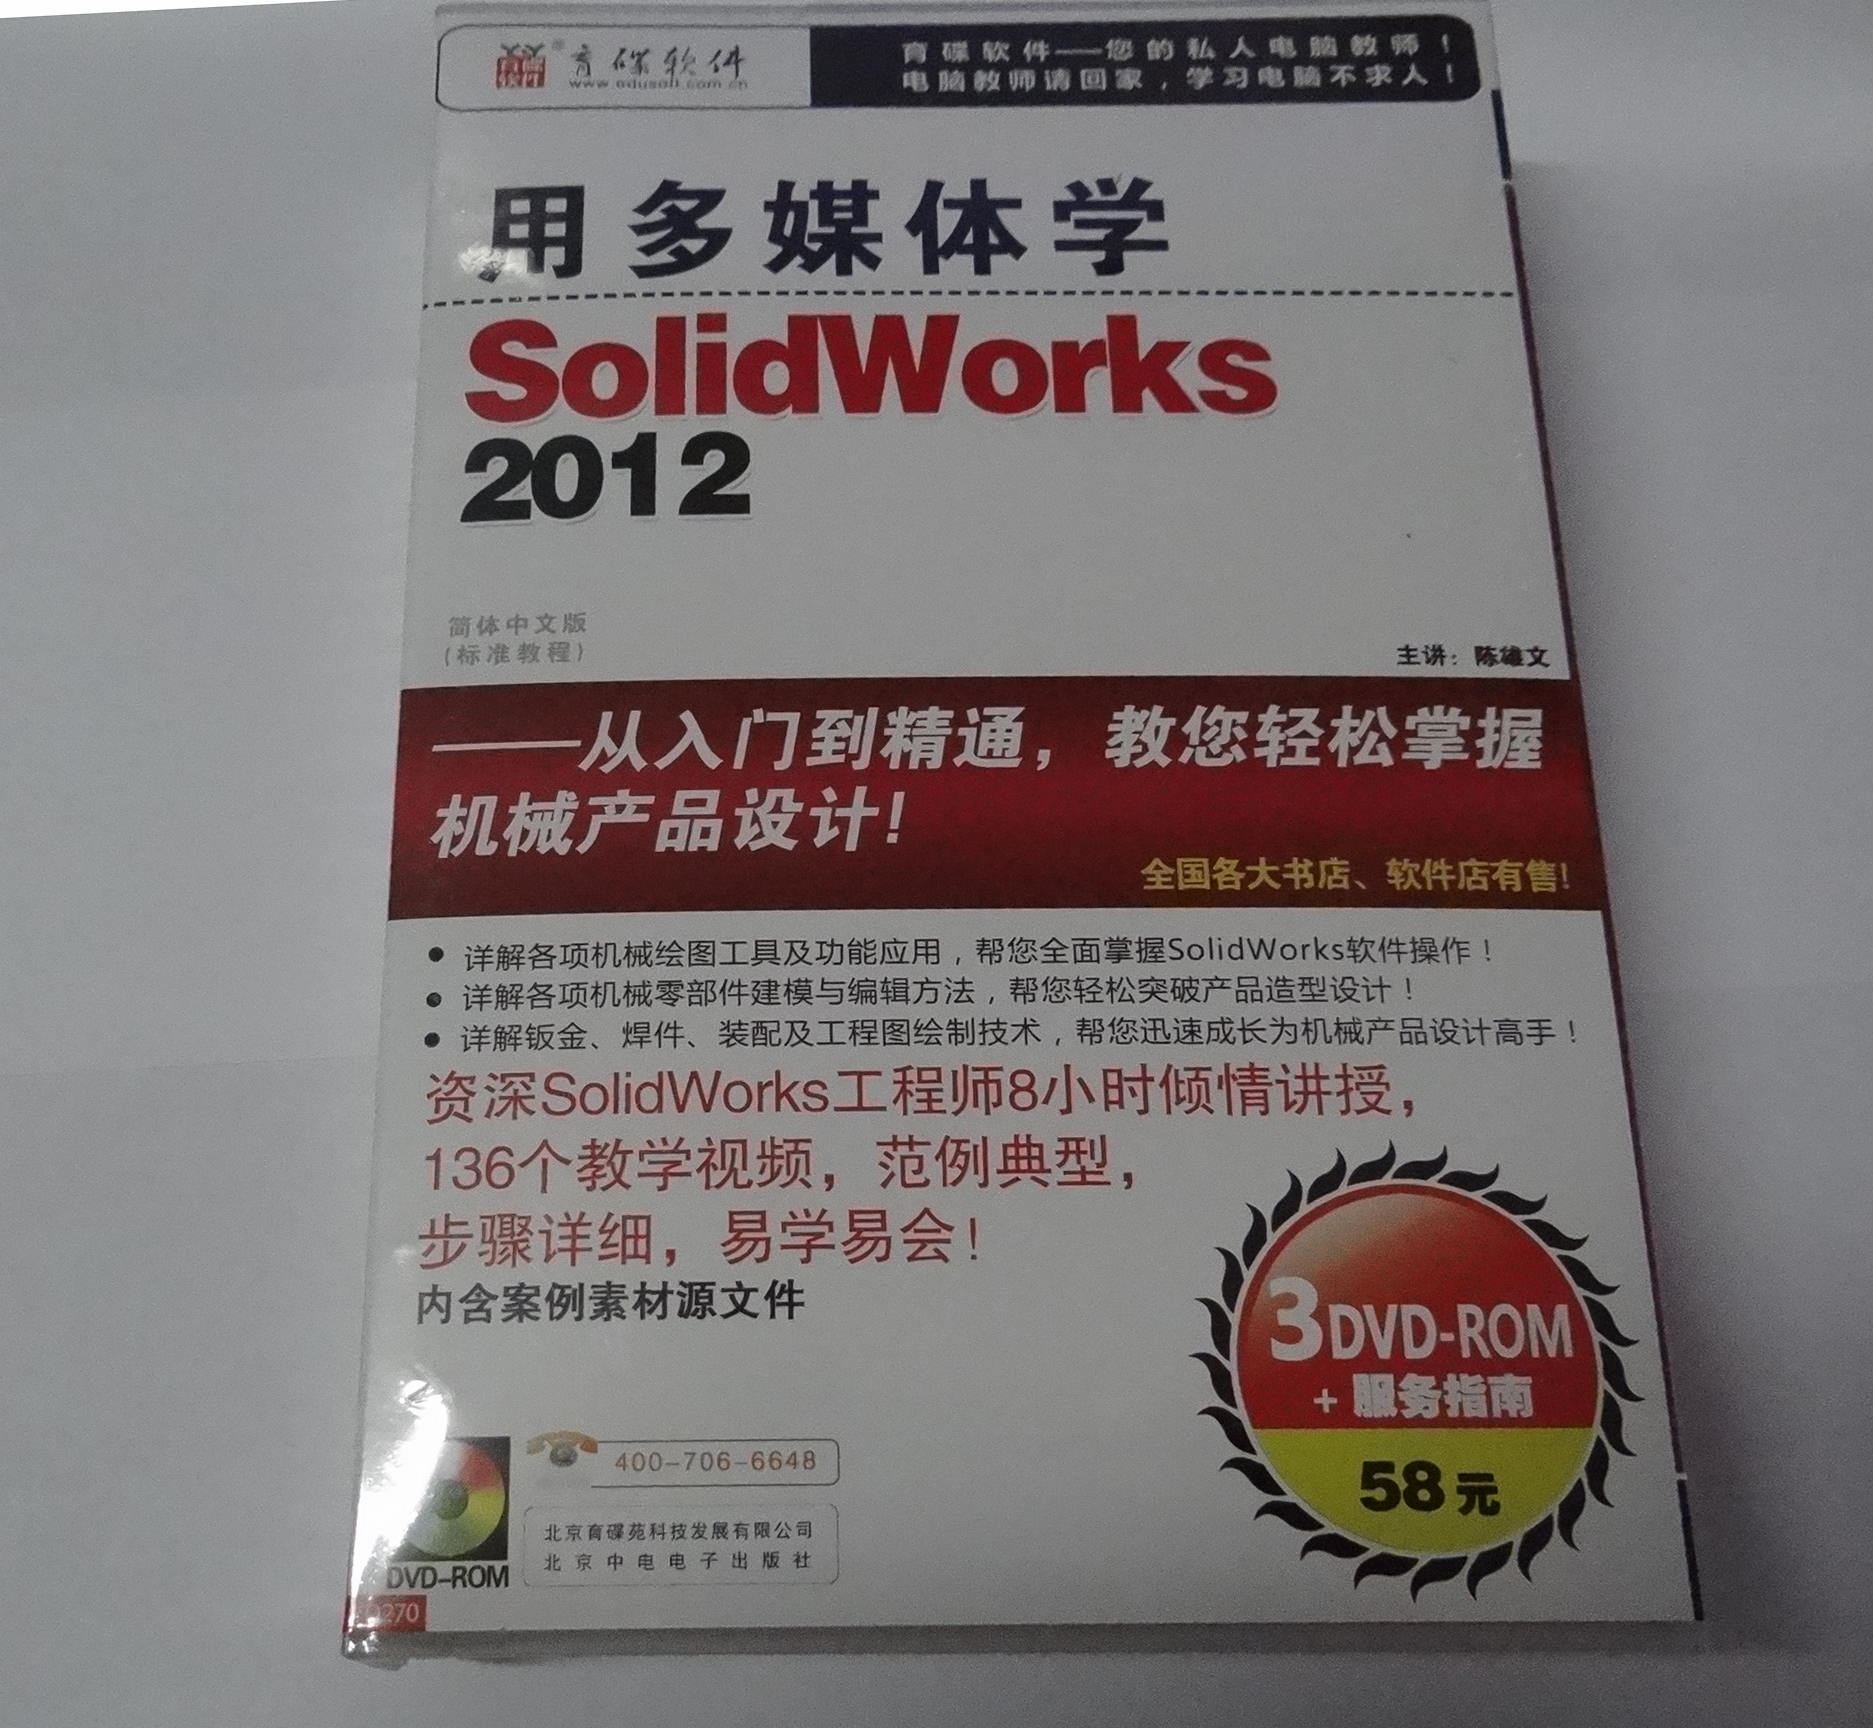 用多媒体学Solid Works 2012(3DVD-ROM) 晒单实拍图